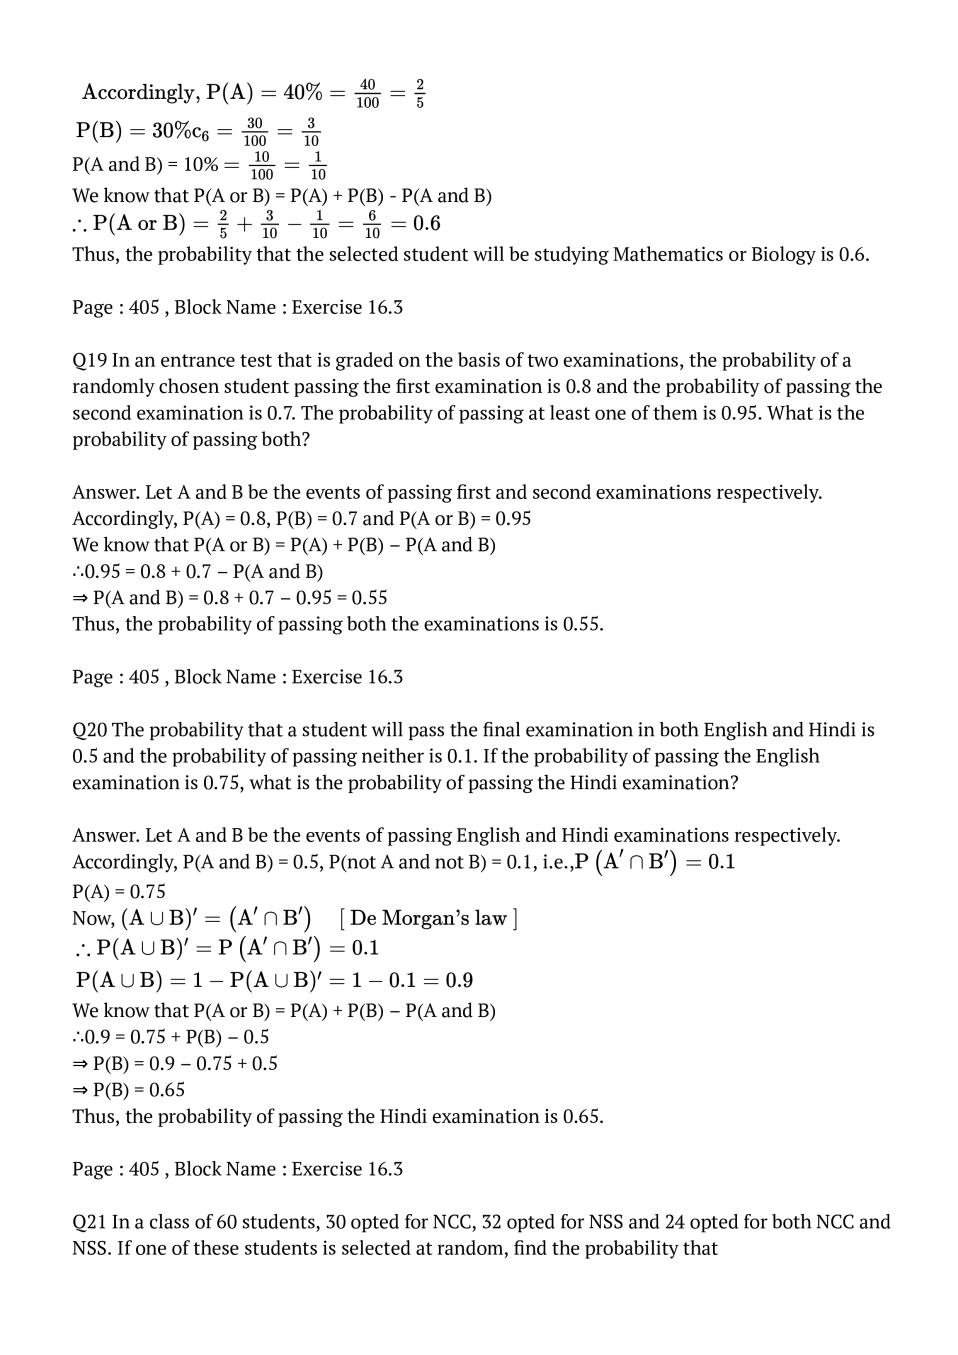 NCERT Solutions for Class 11 Maths Chapter 16 Probability